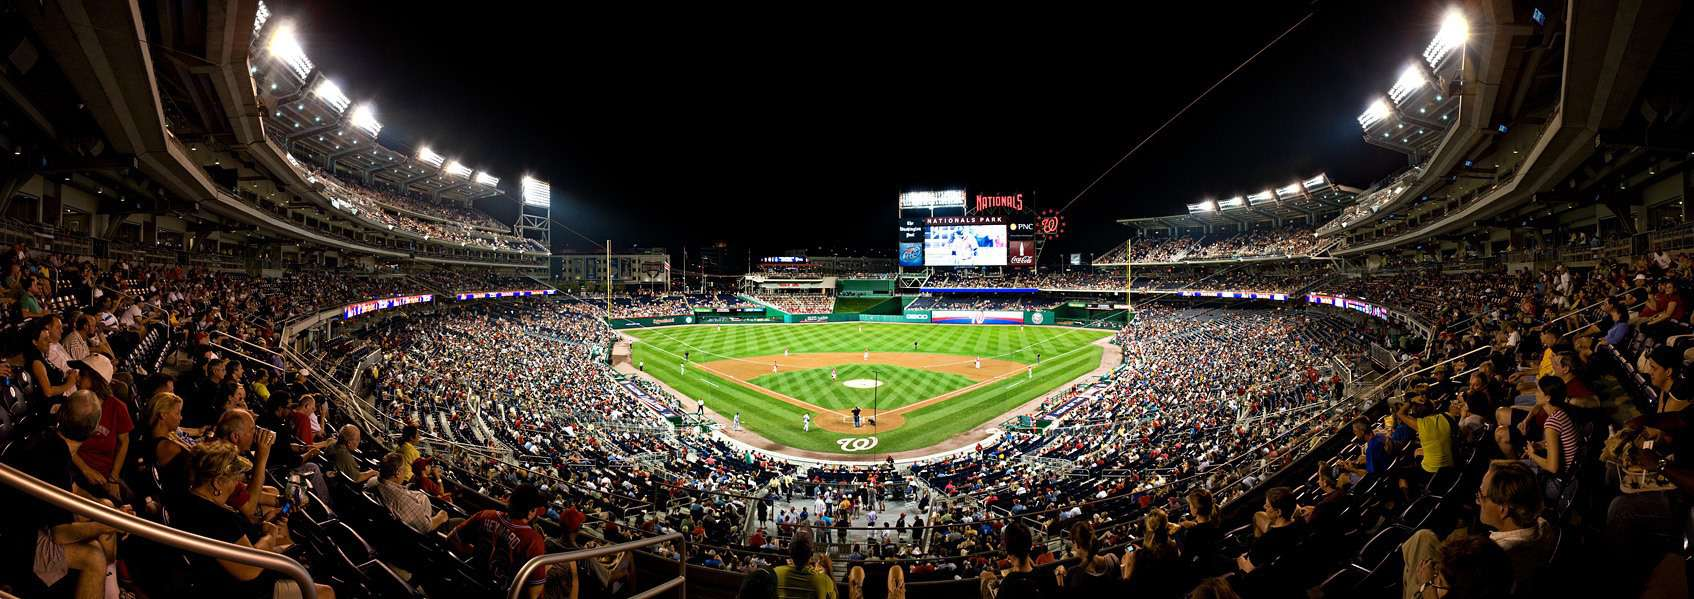 Nationals Park Seating Chart